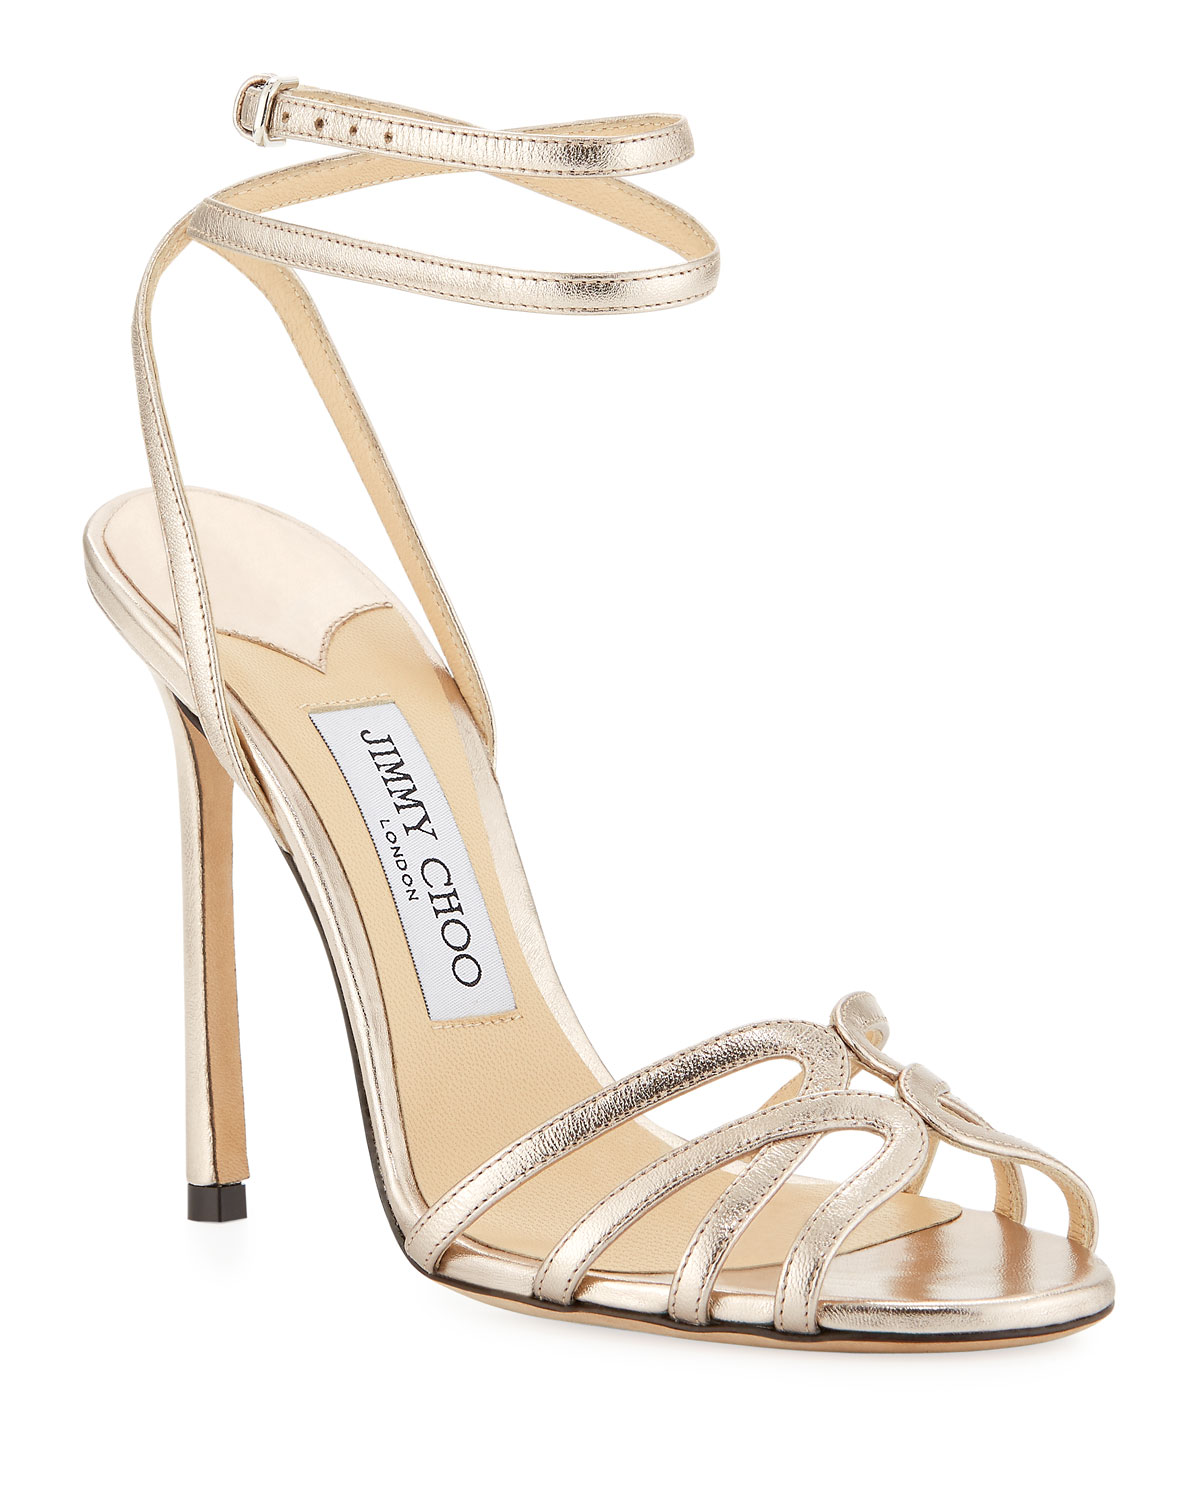 858cc628c16 Jimmy Choo Mimi Metallic Leather Sandals